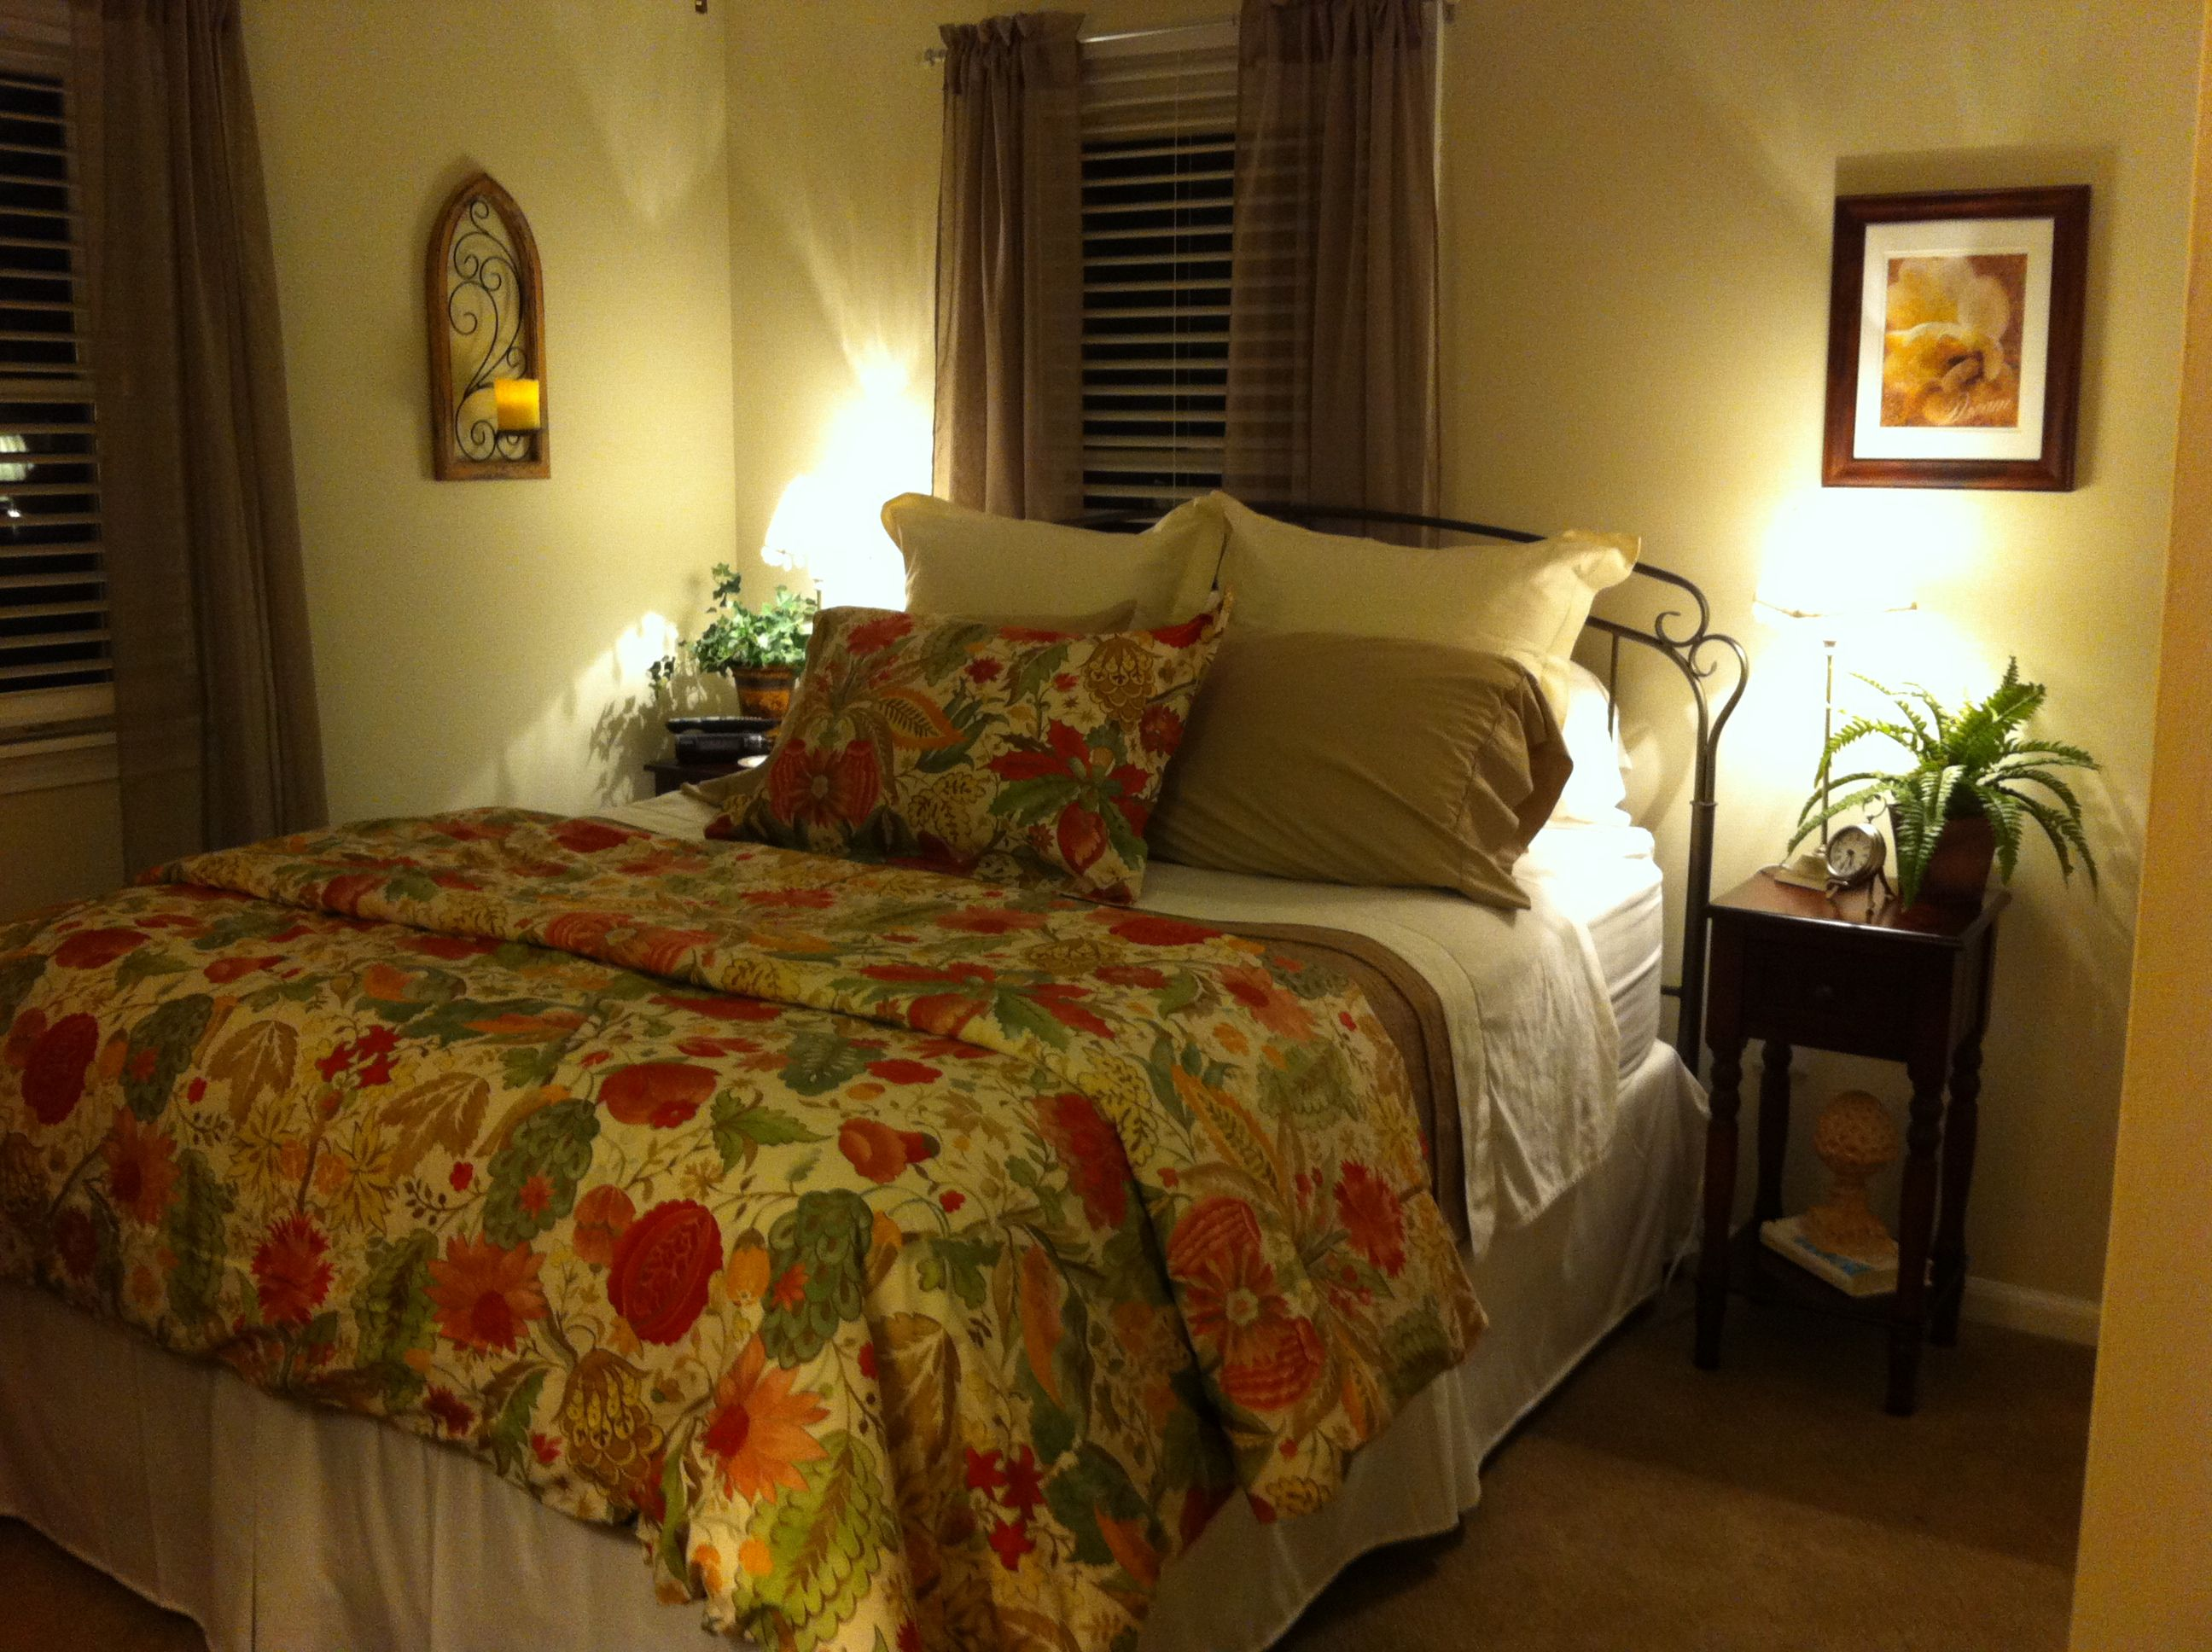 Arranging Small Bedroom Ideas Photo Gallery